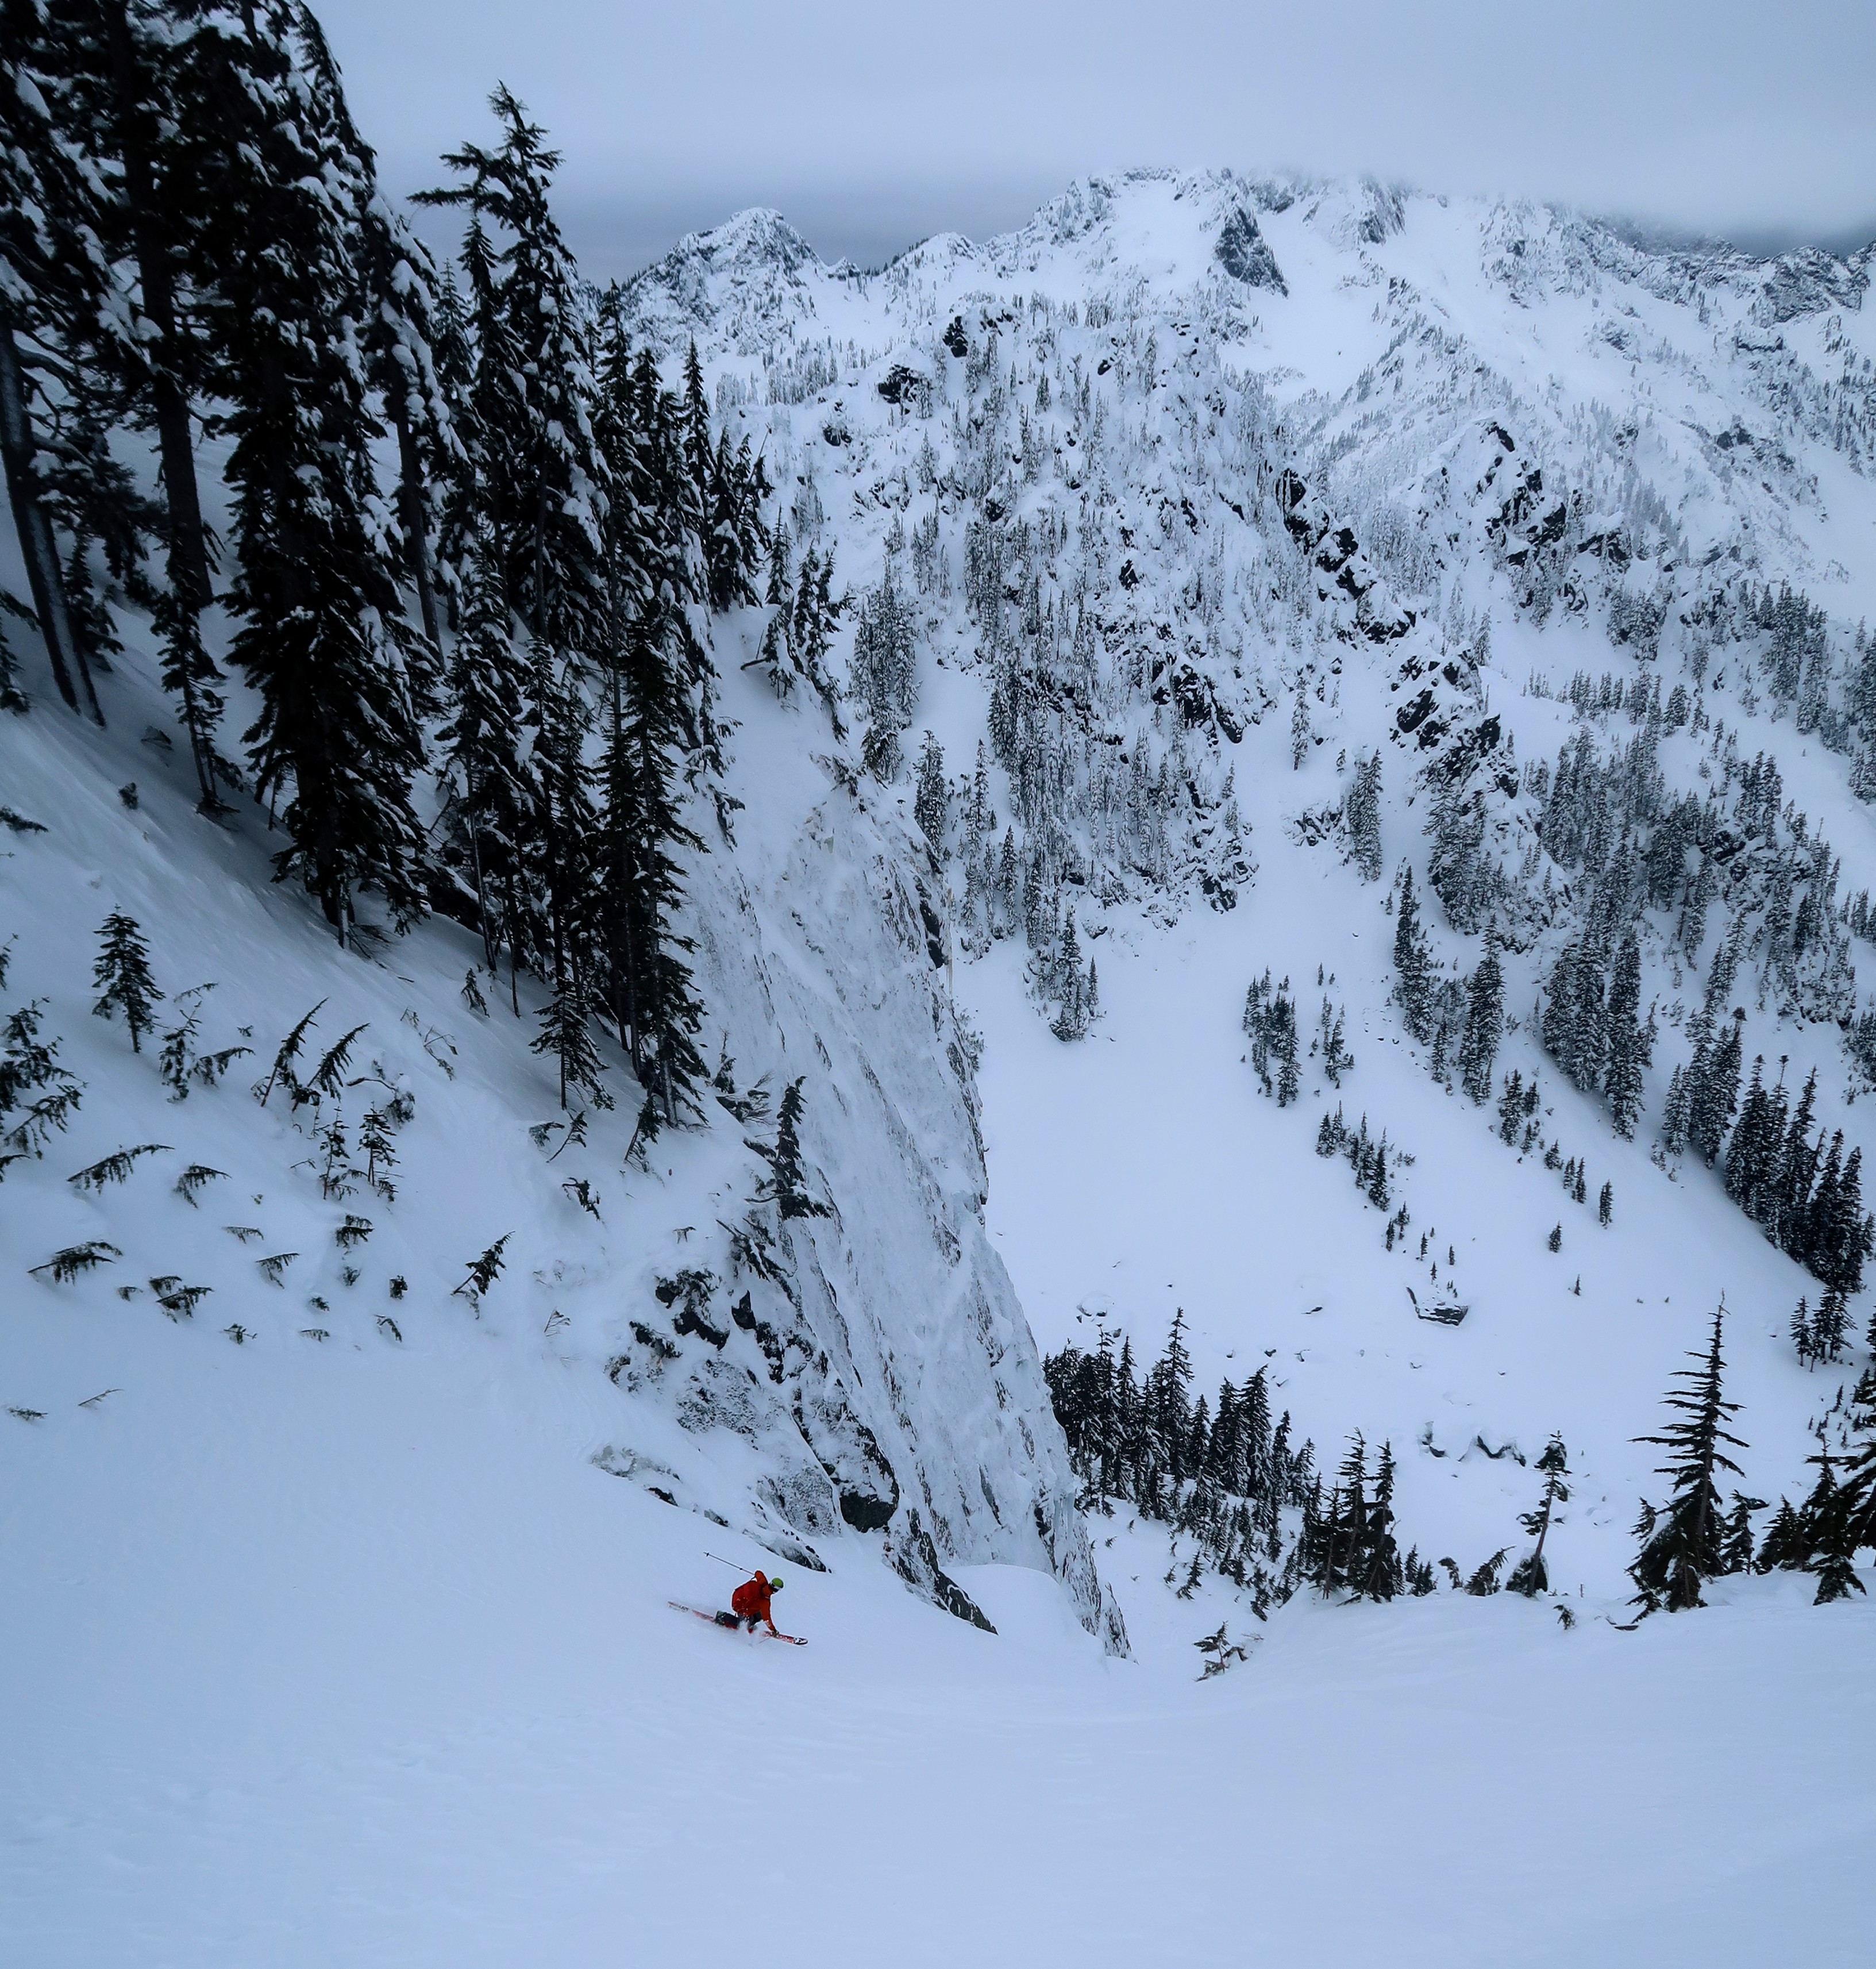 Constriction on Crooked Couloir